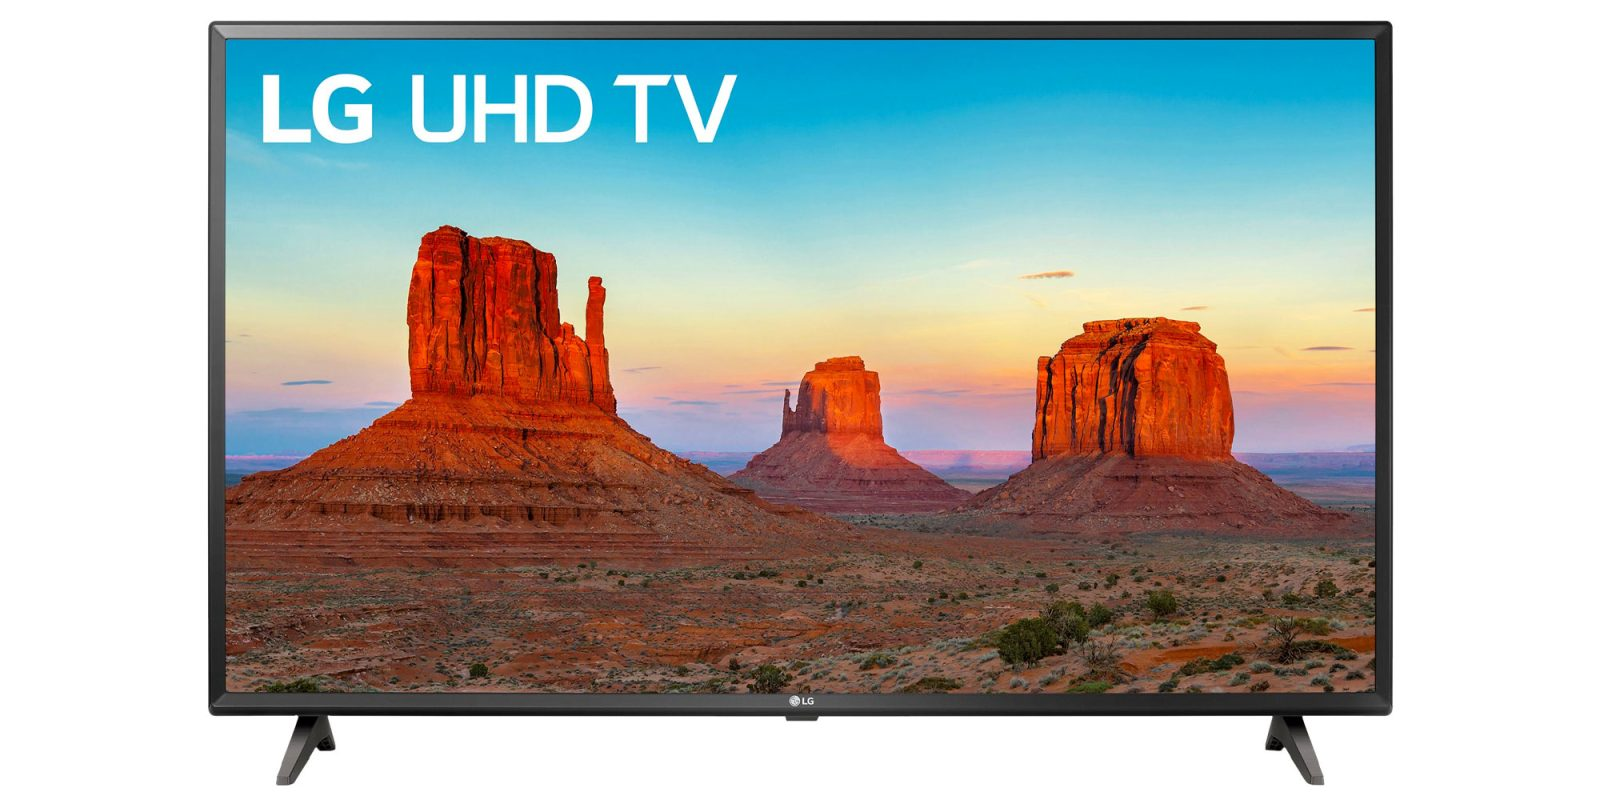 Upgrade your office or game room w/ these HD + 4K smart TVs from $200